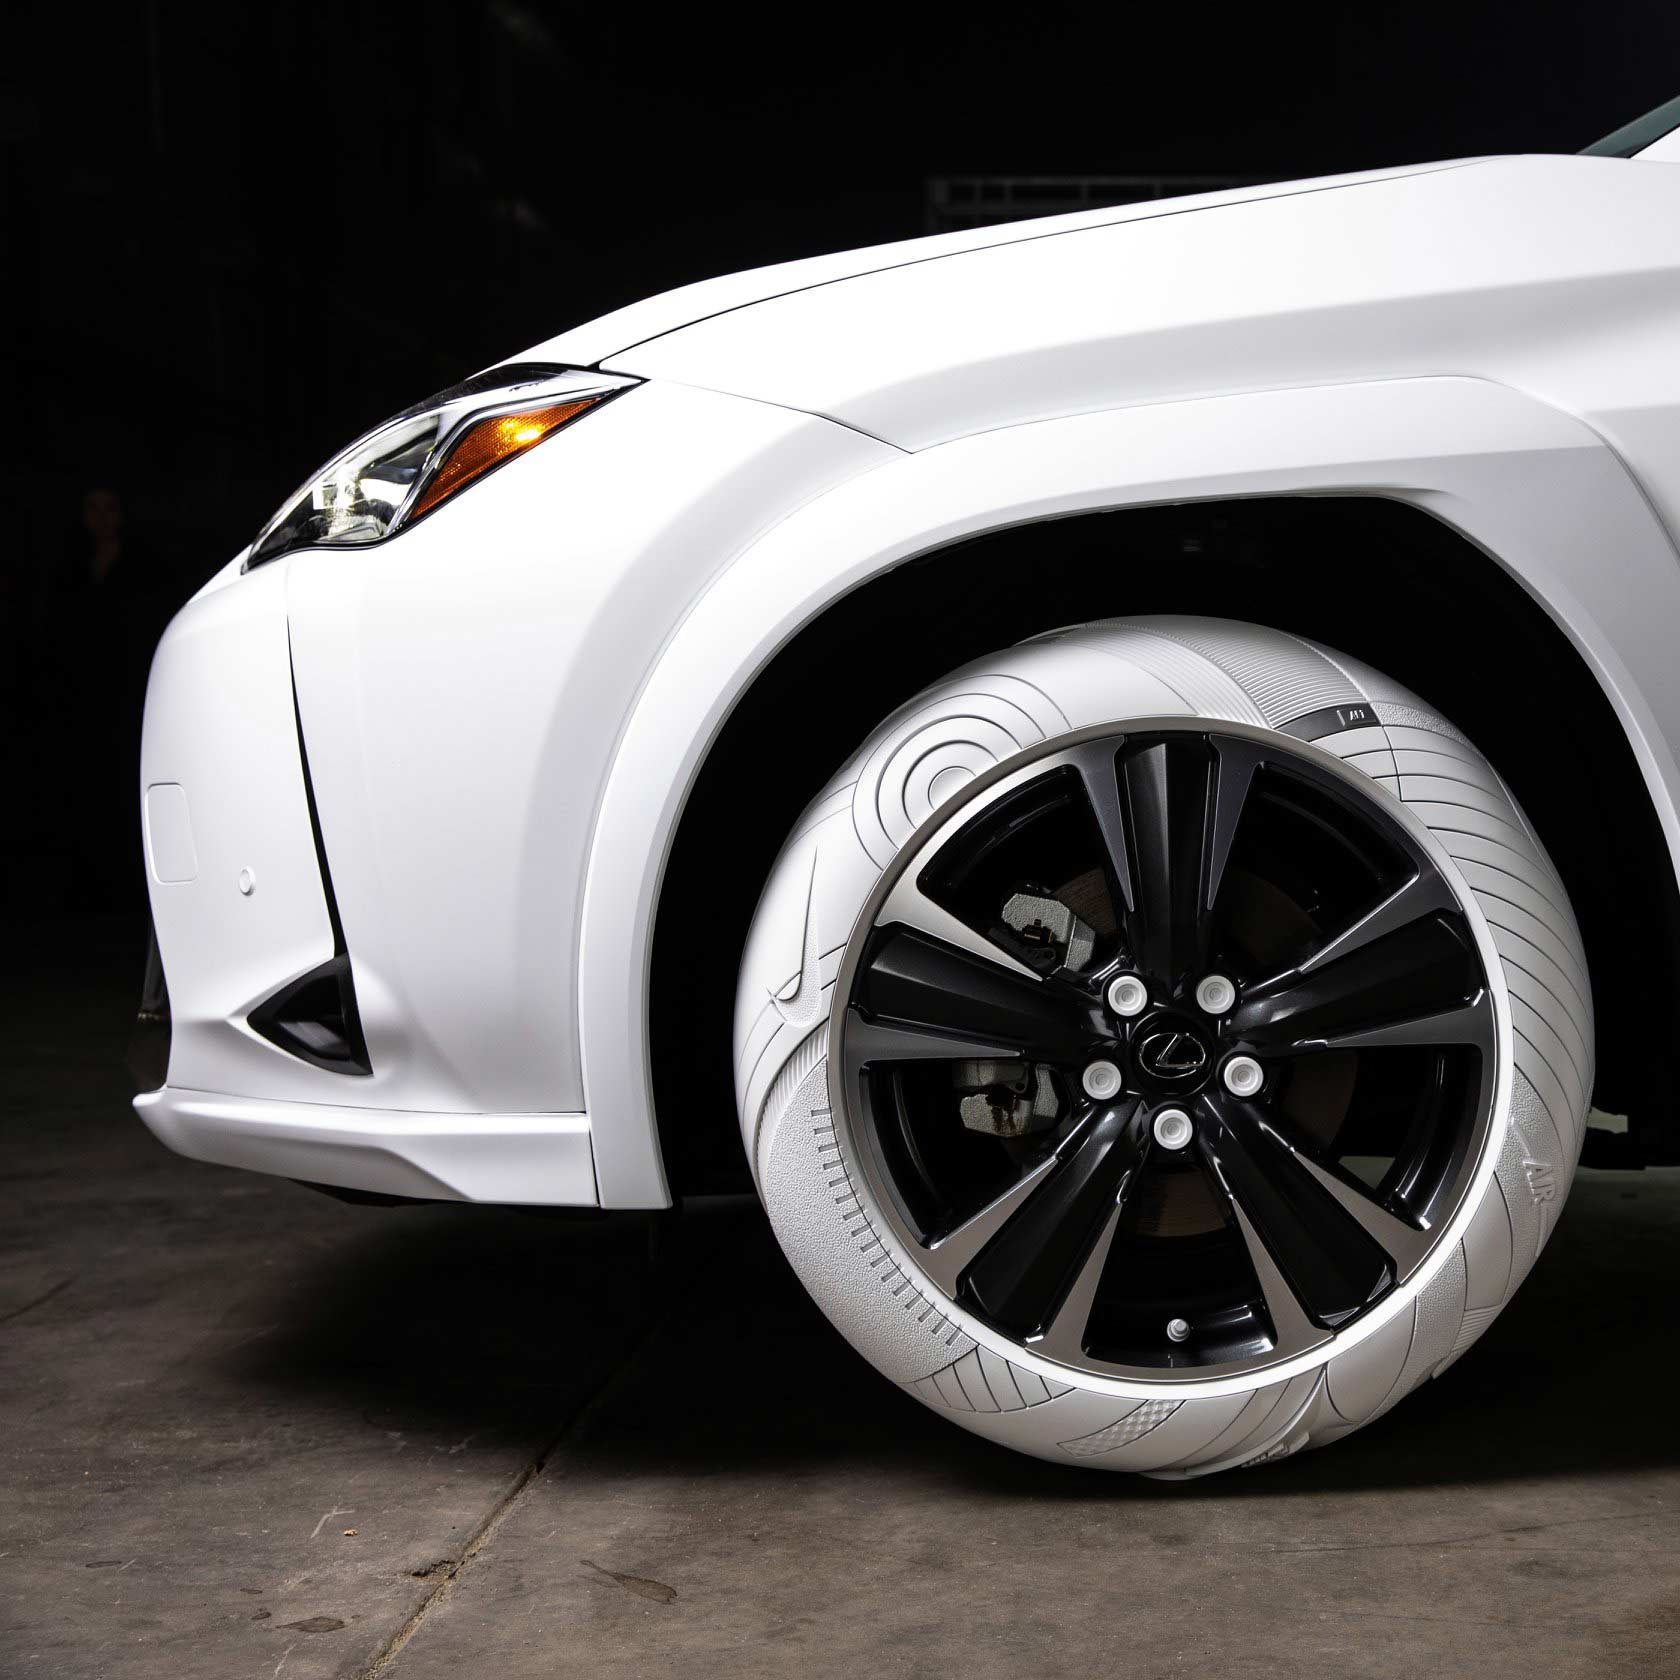 2019-Lexus-UX-Sole-of-the-UX-John-Elliott-Nike-AF1-shoe-inspired-tires_3